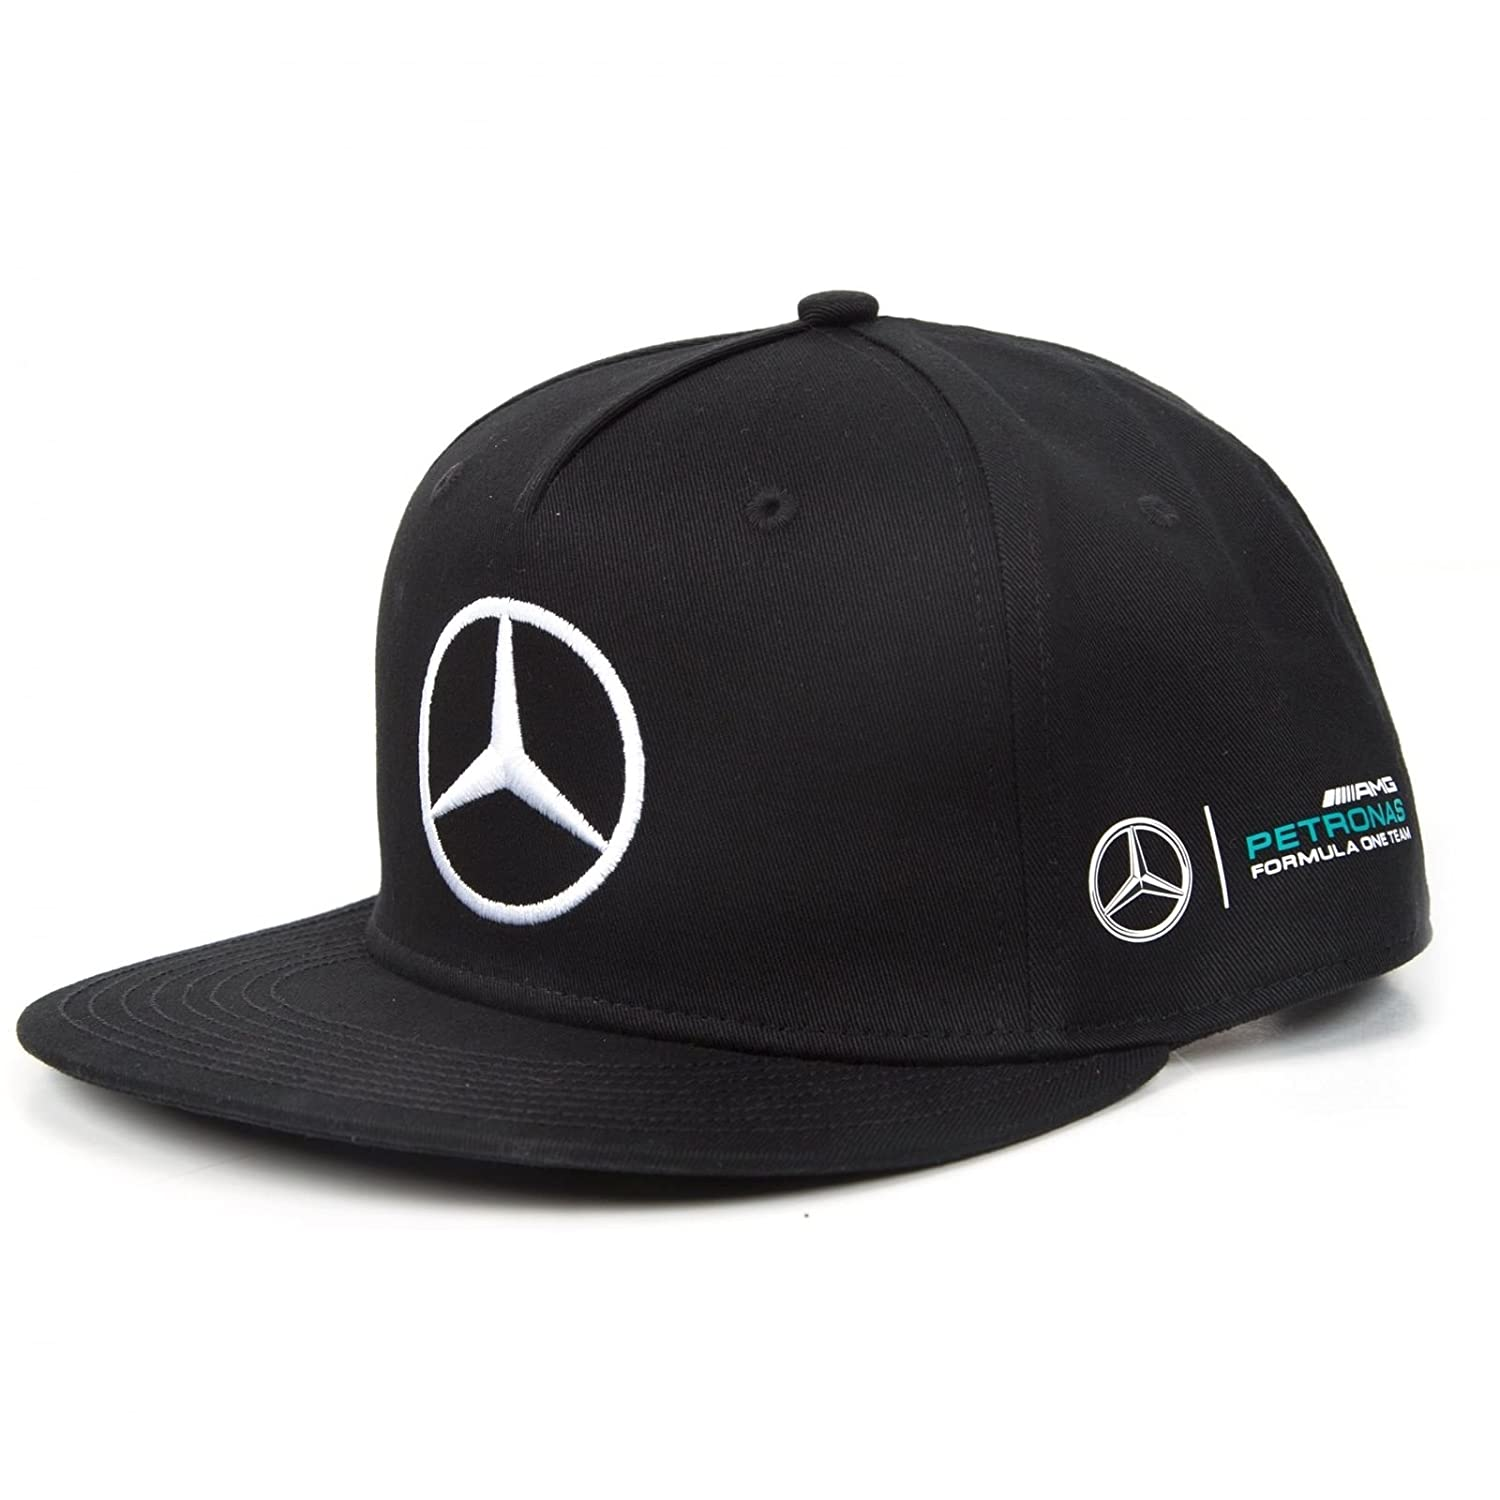 mercedes amg petronas hamilton flat brim casquette formule 1 f1 141171032 ebay. Black Bedroom Furniture Sets. Home Design Ideas